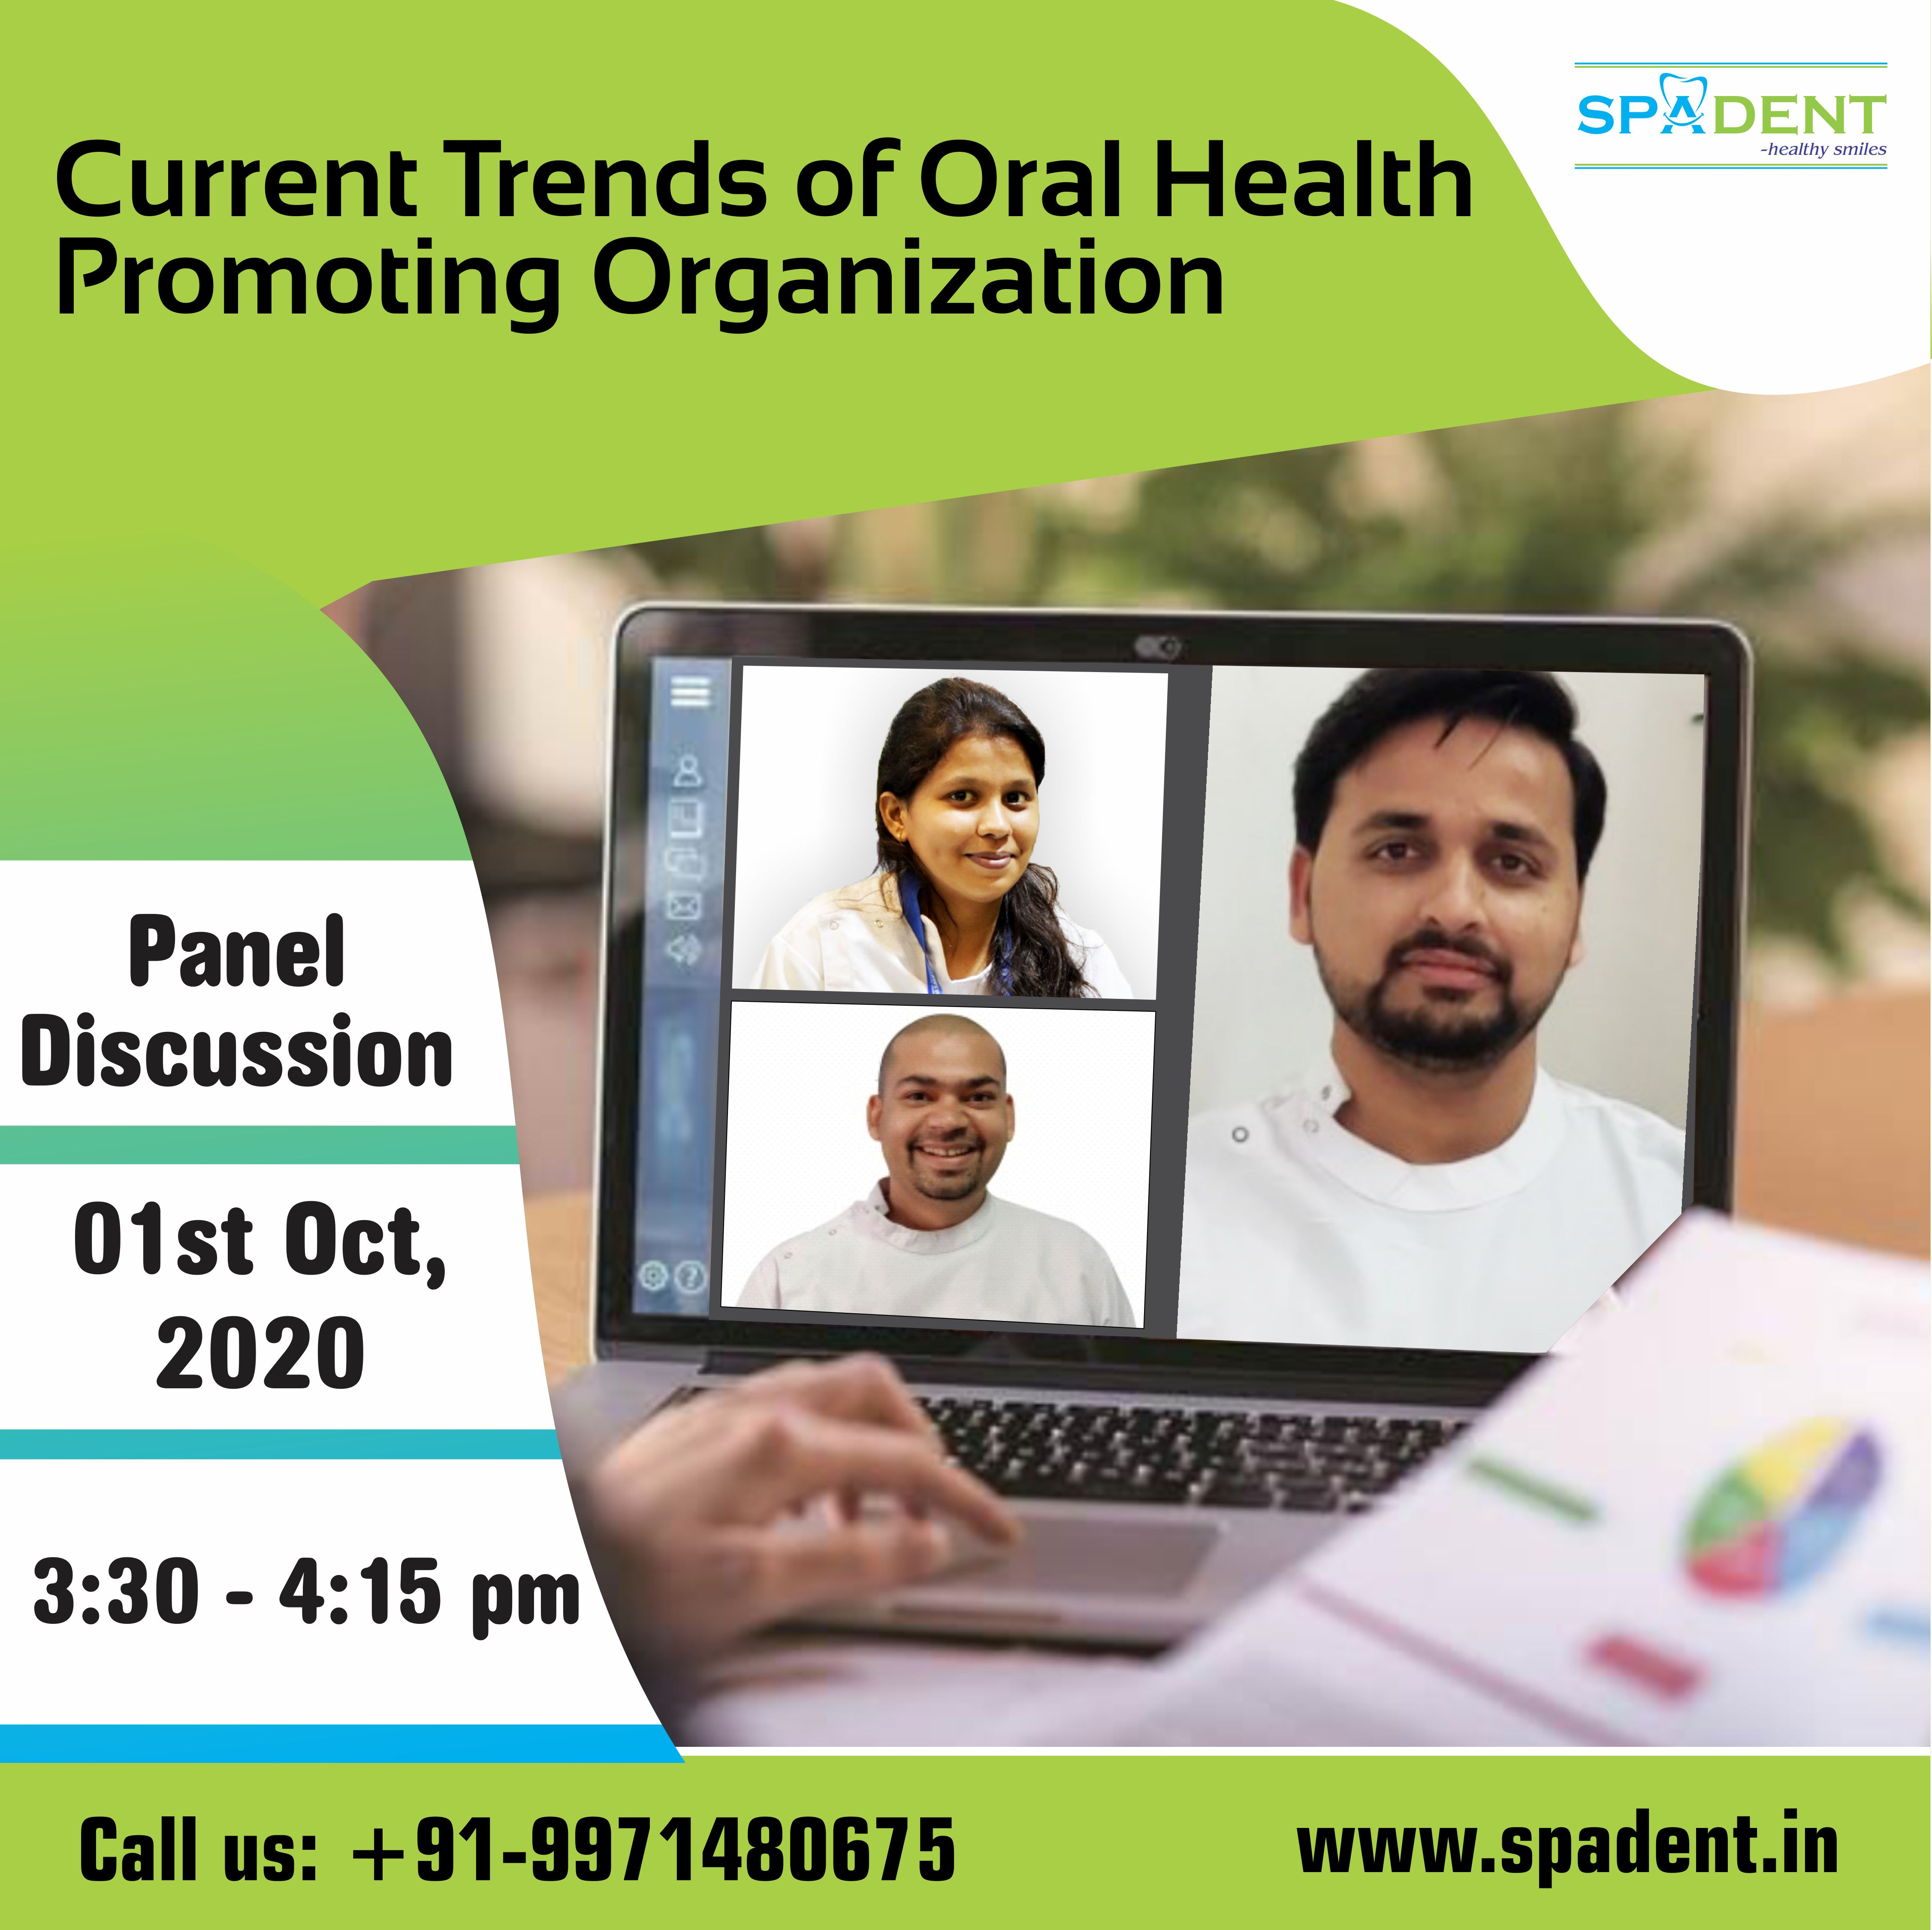 Current Trends of oral health promoting organizations